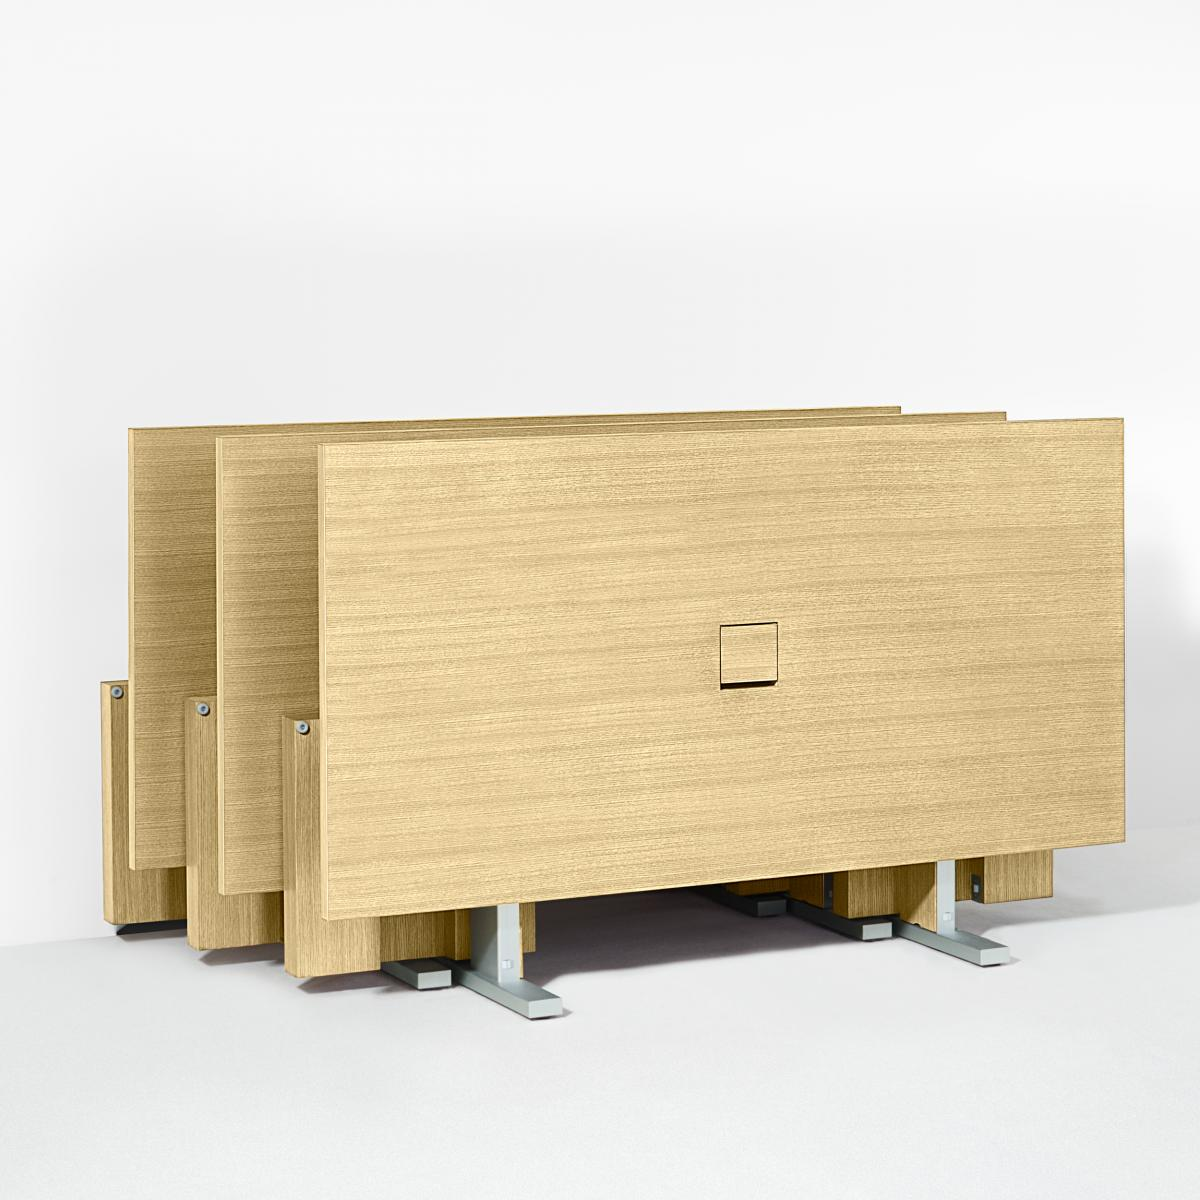 Motus makes every space more dynamic, flexible and productive. Move, reconfigure, and store Motus tables with ease.